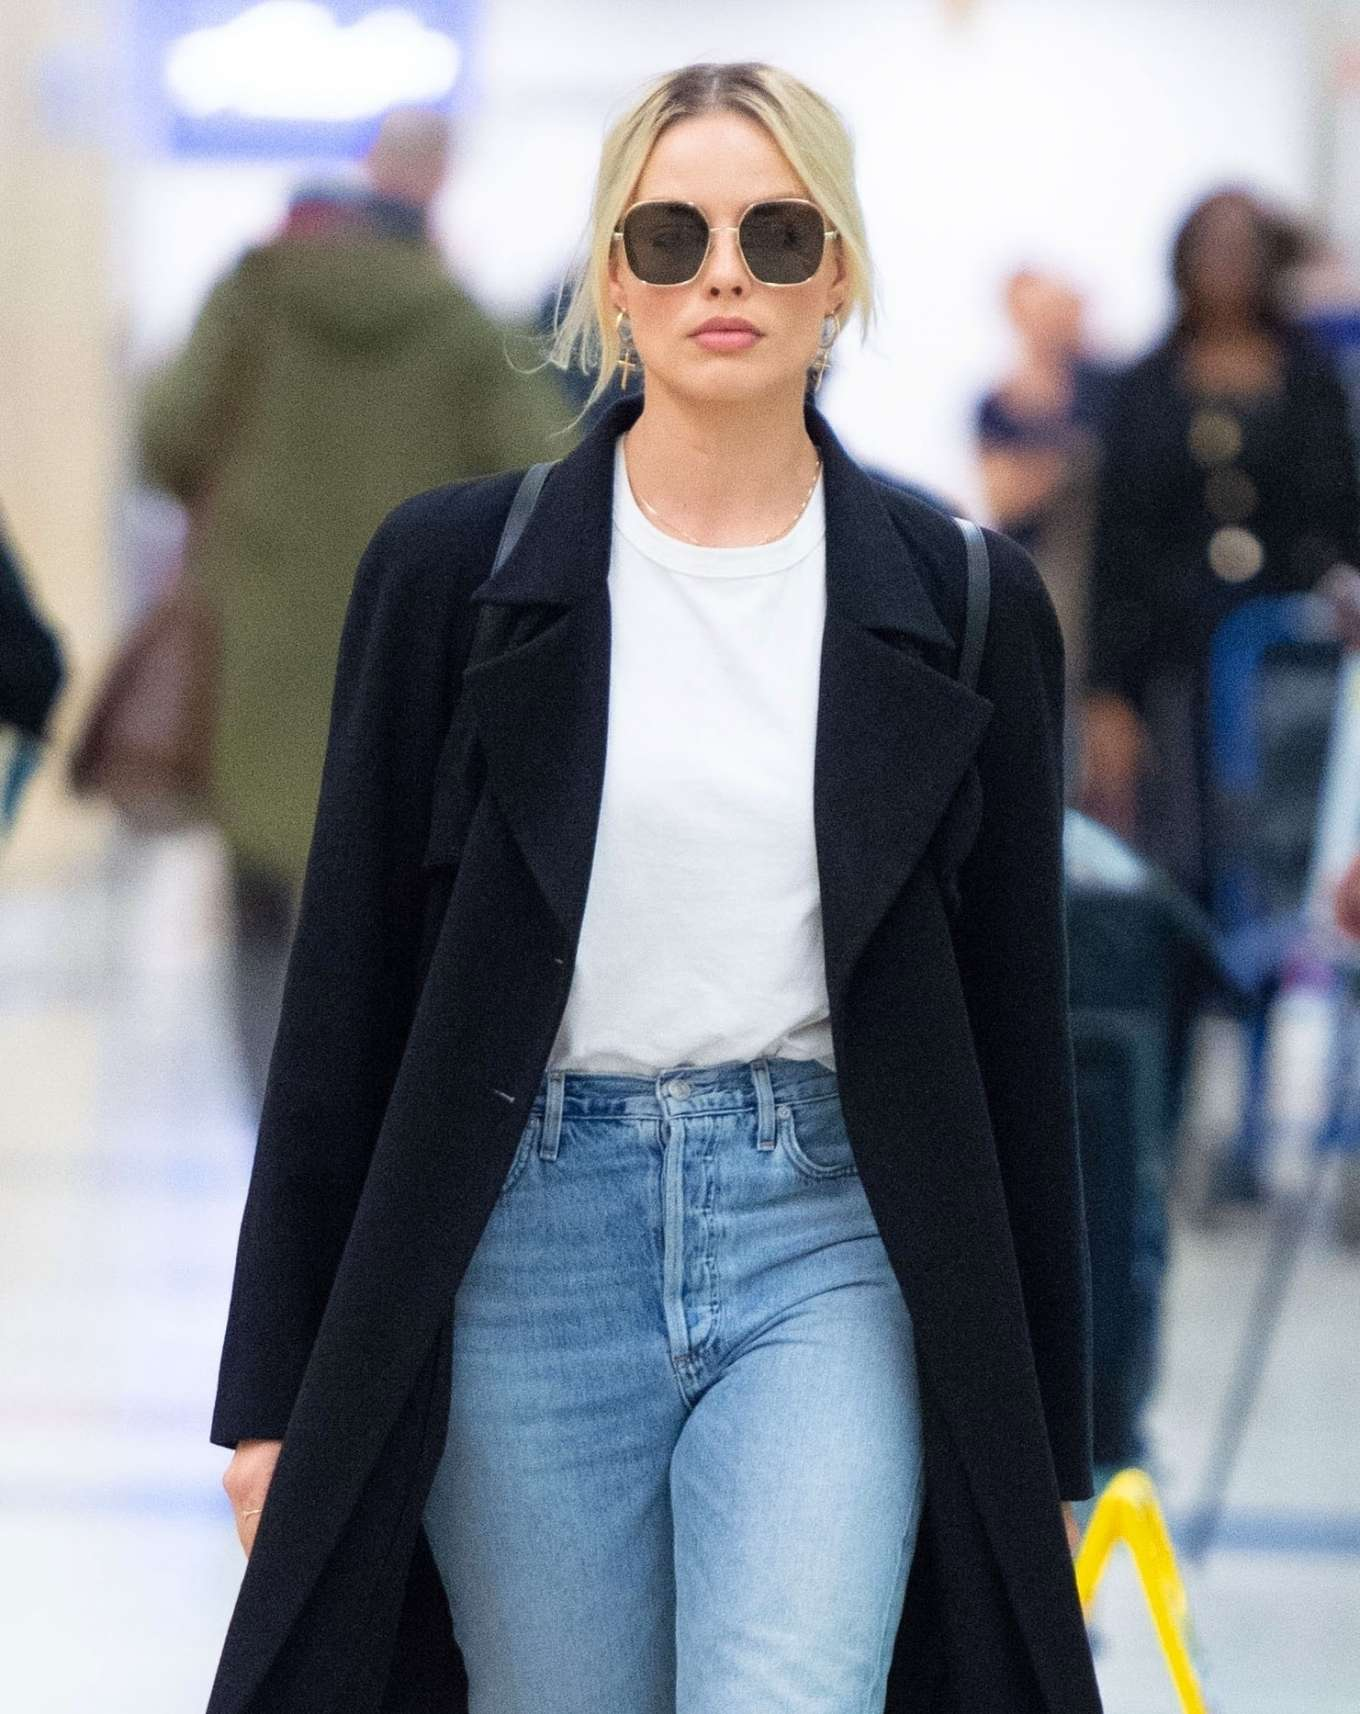 Margot Robbie - Arrives at JFK airport in New York City